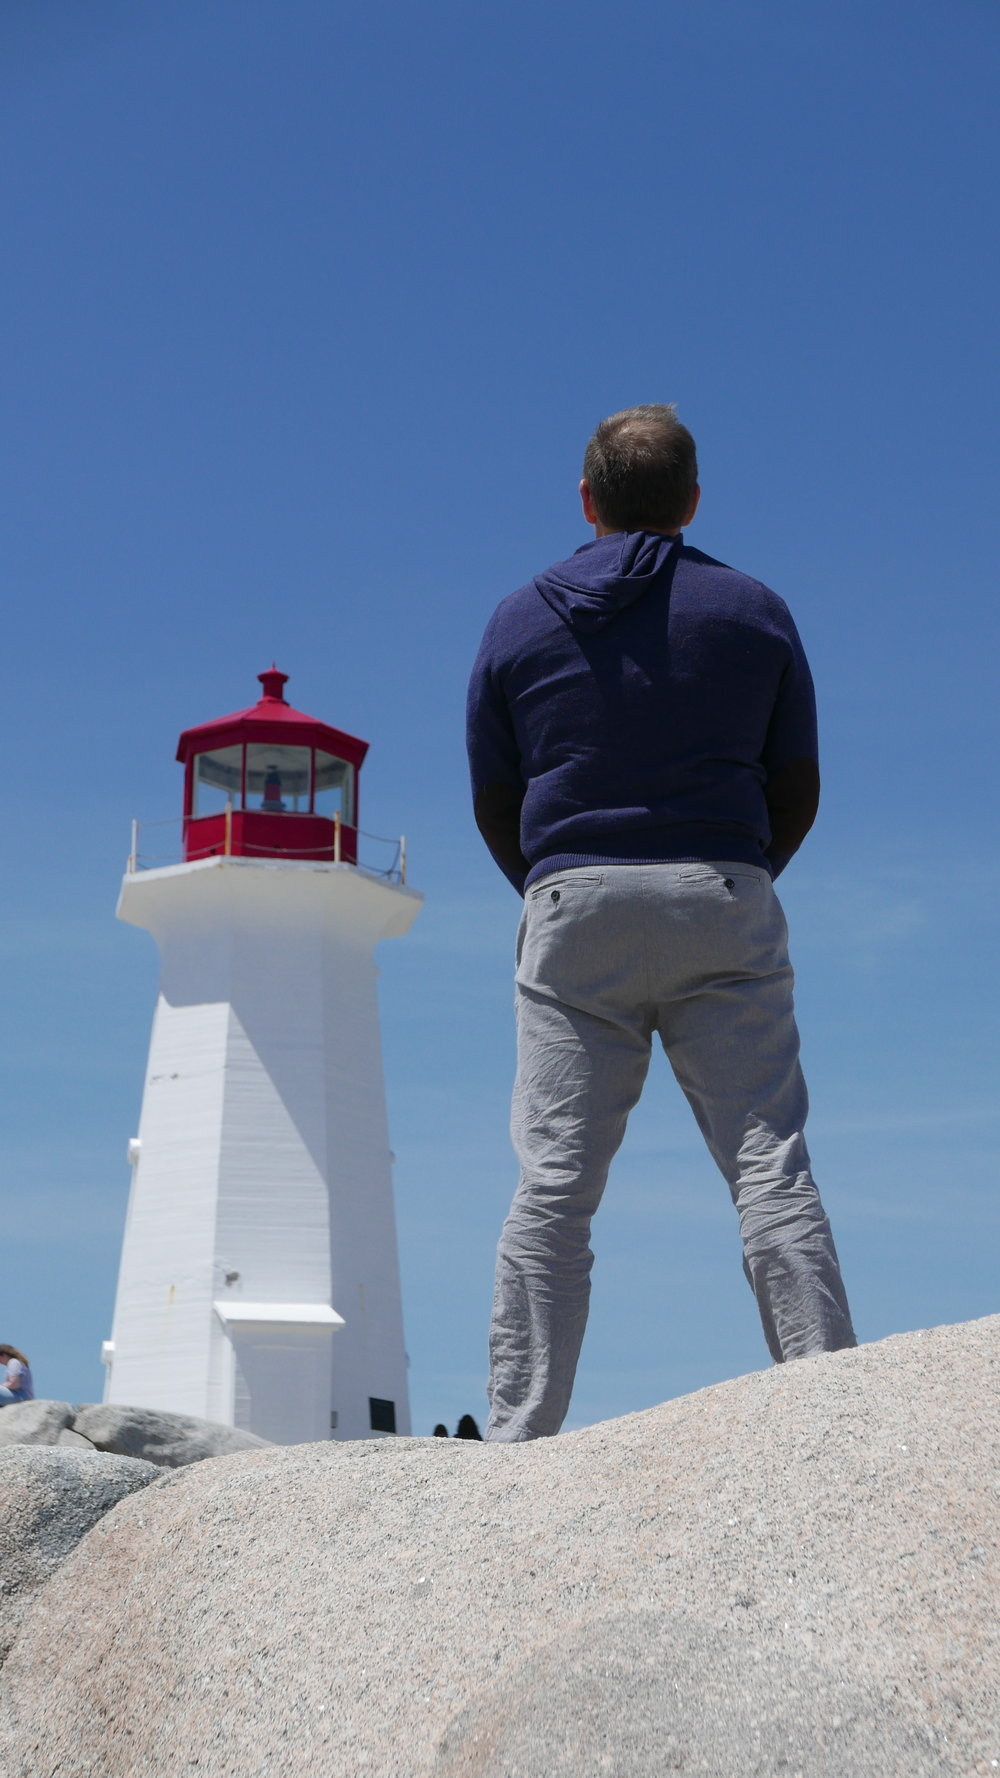 M at Peggy's Cove